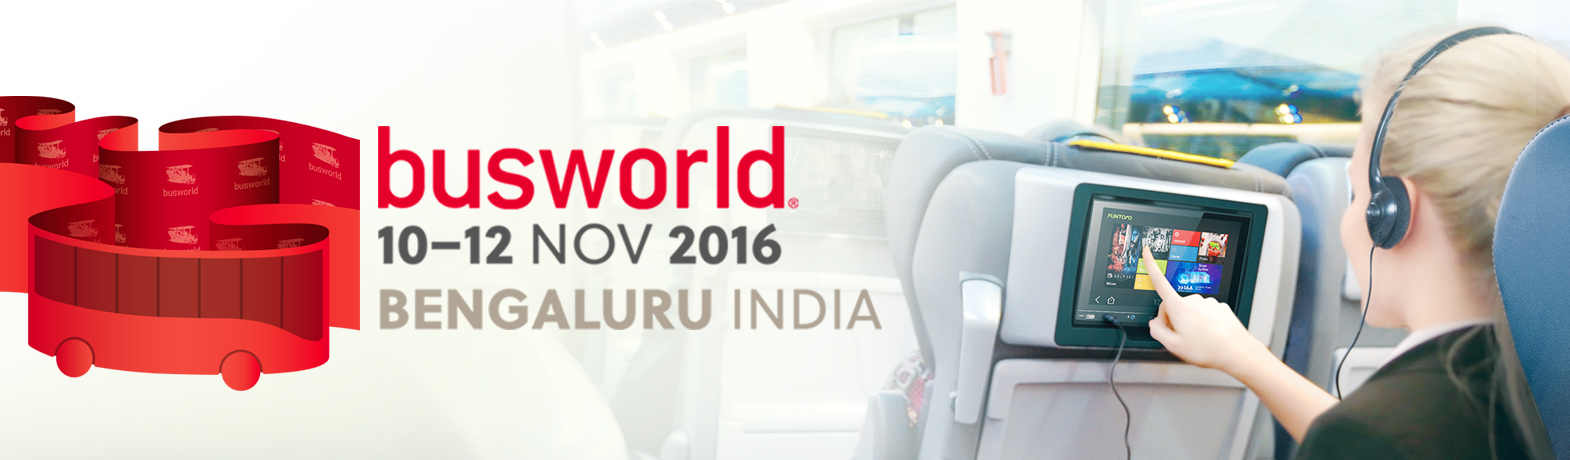 Welcome to visit MSI/FUNTORO (booth#B190) at Busworld India 2016